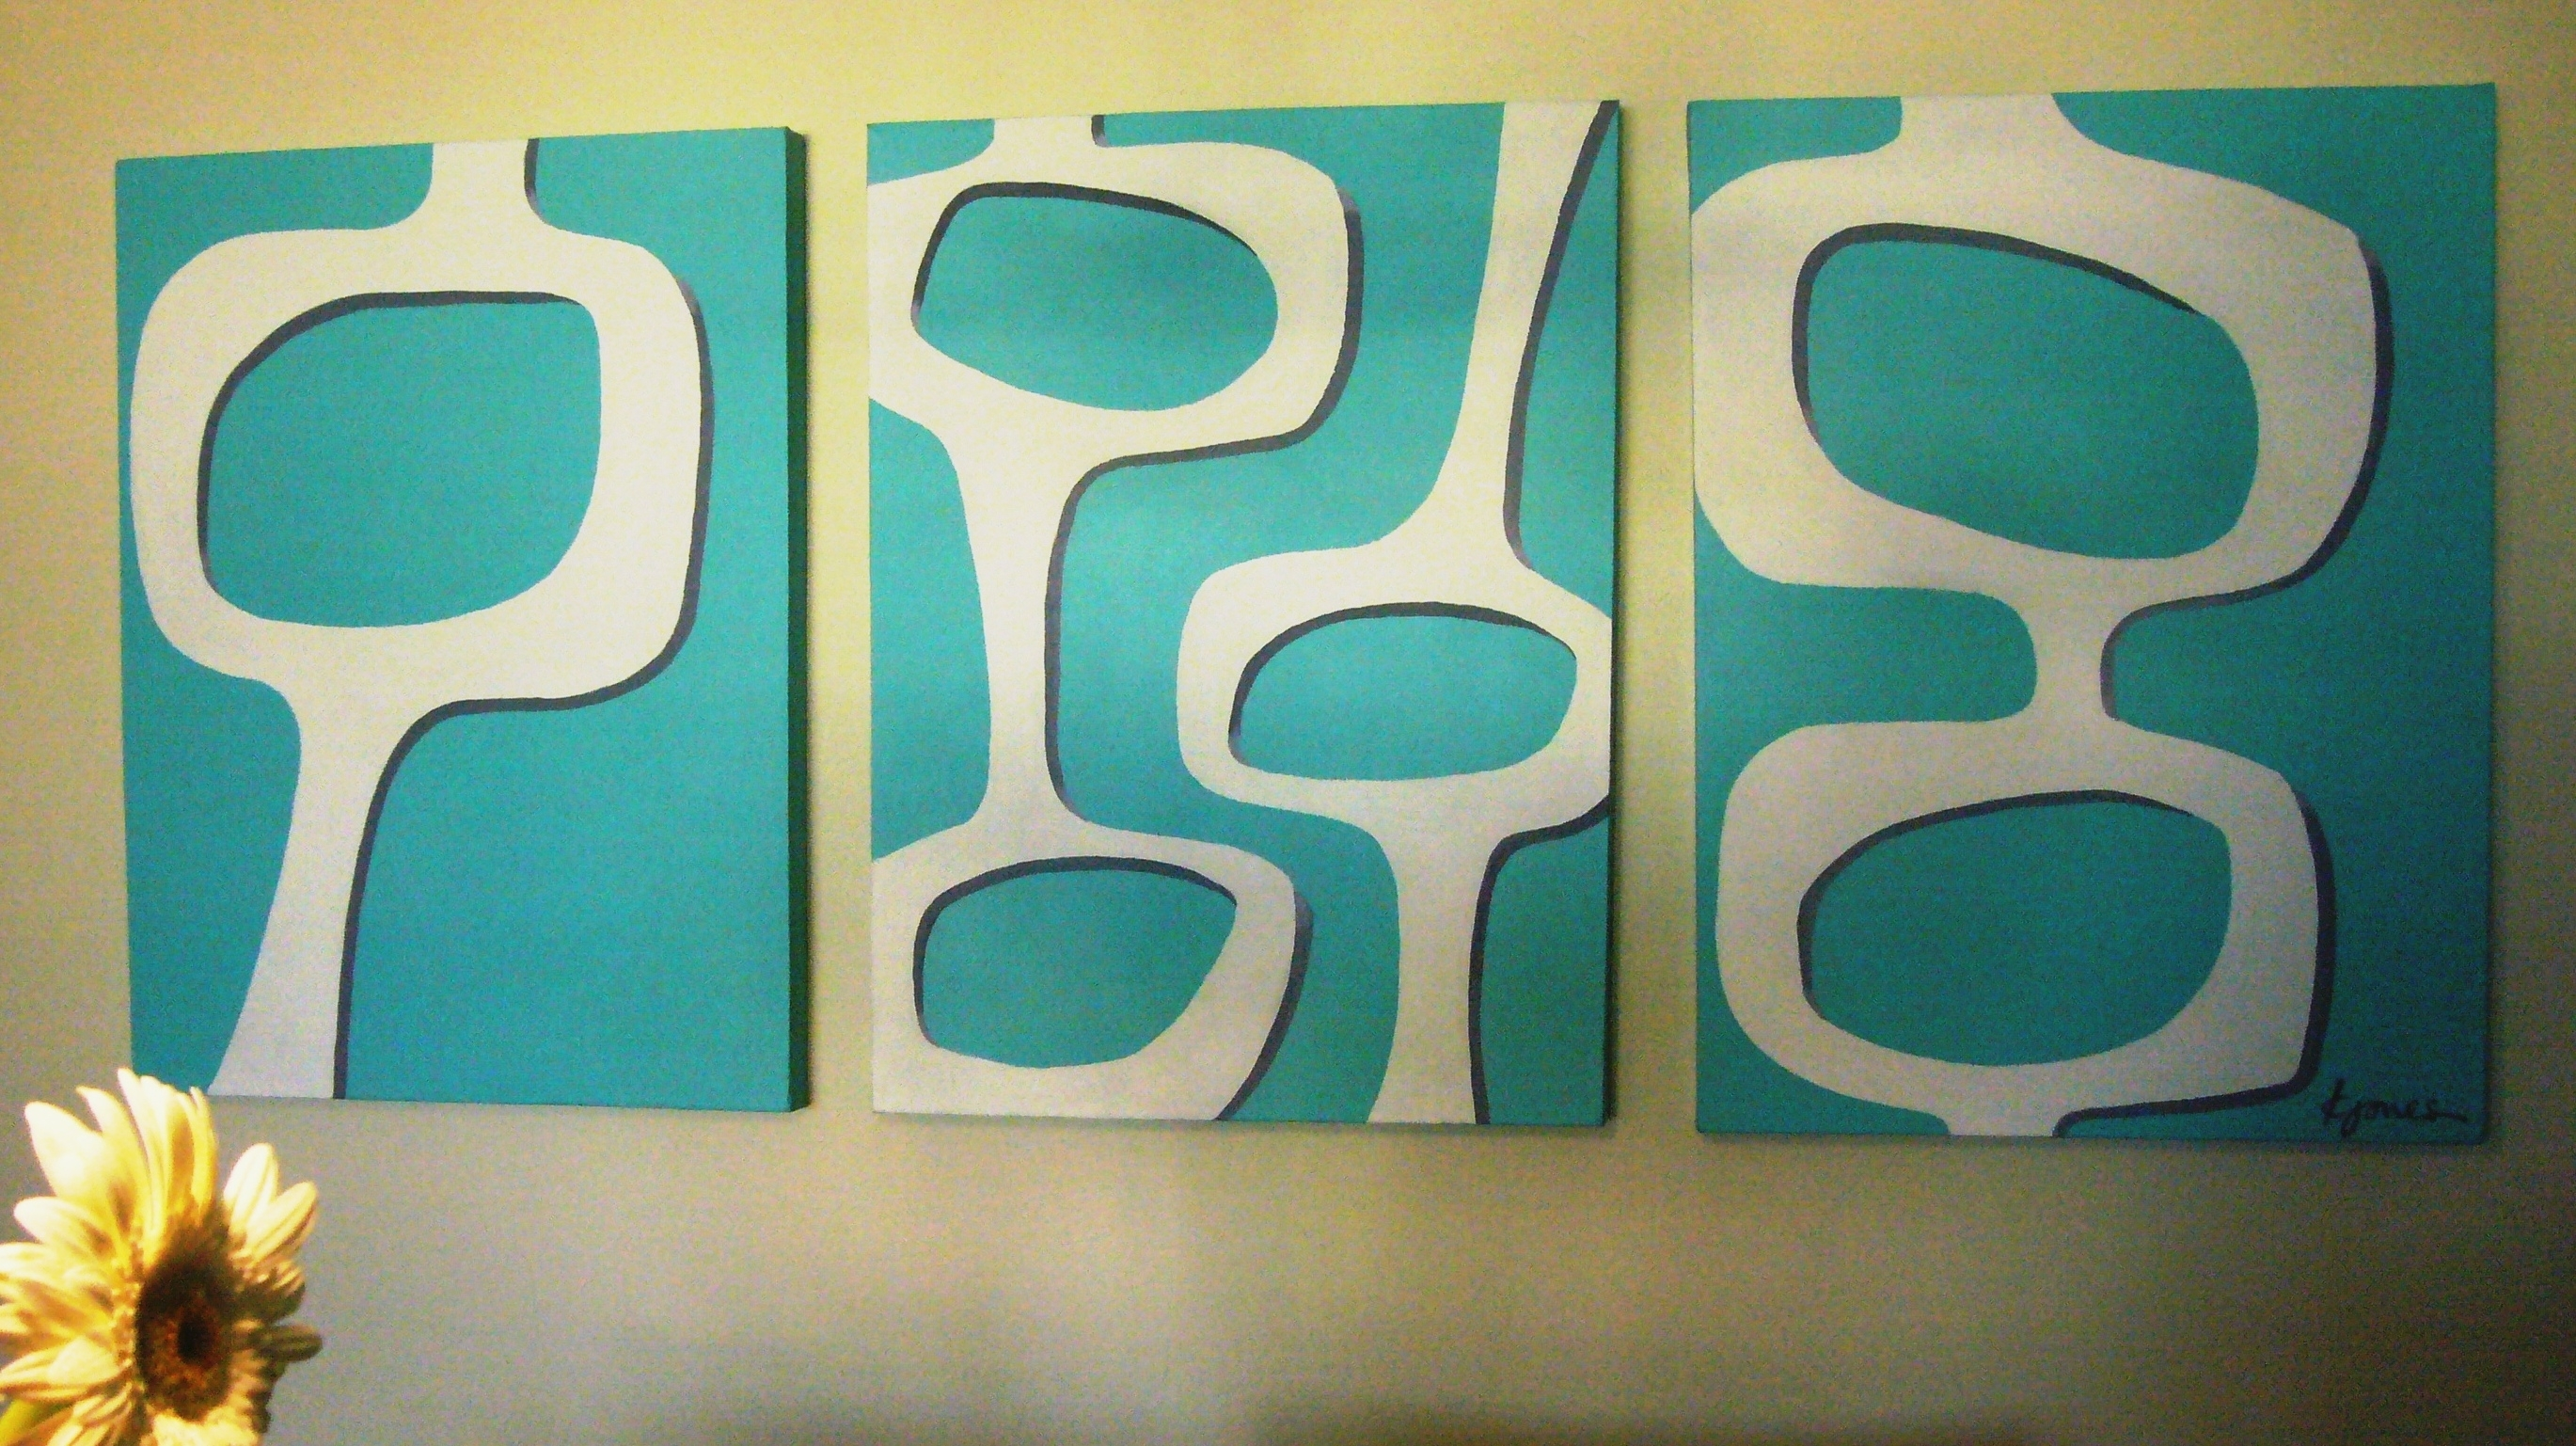 Easy Art | Pennello Lane Pertaining To Current Mid Century Wall Art (Gallery 17 of 20)